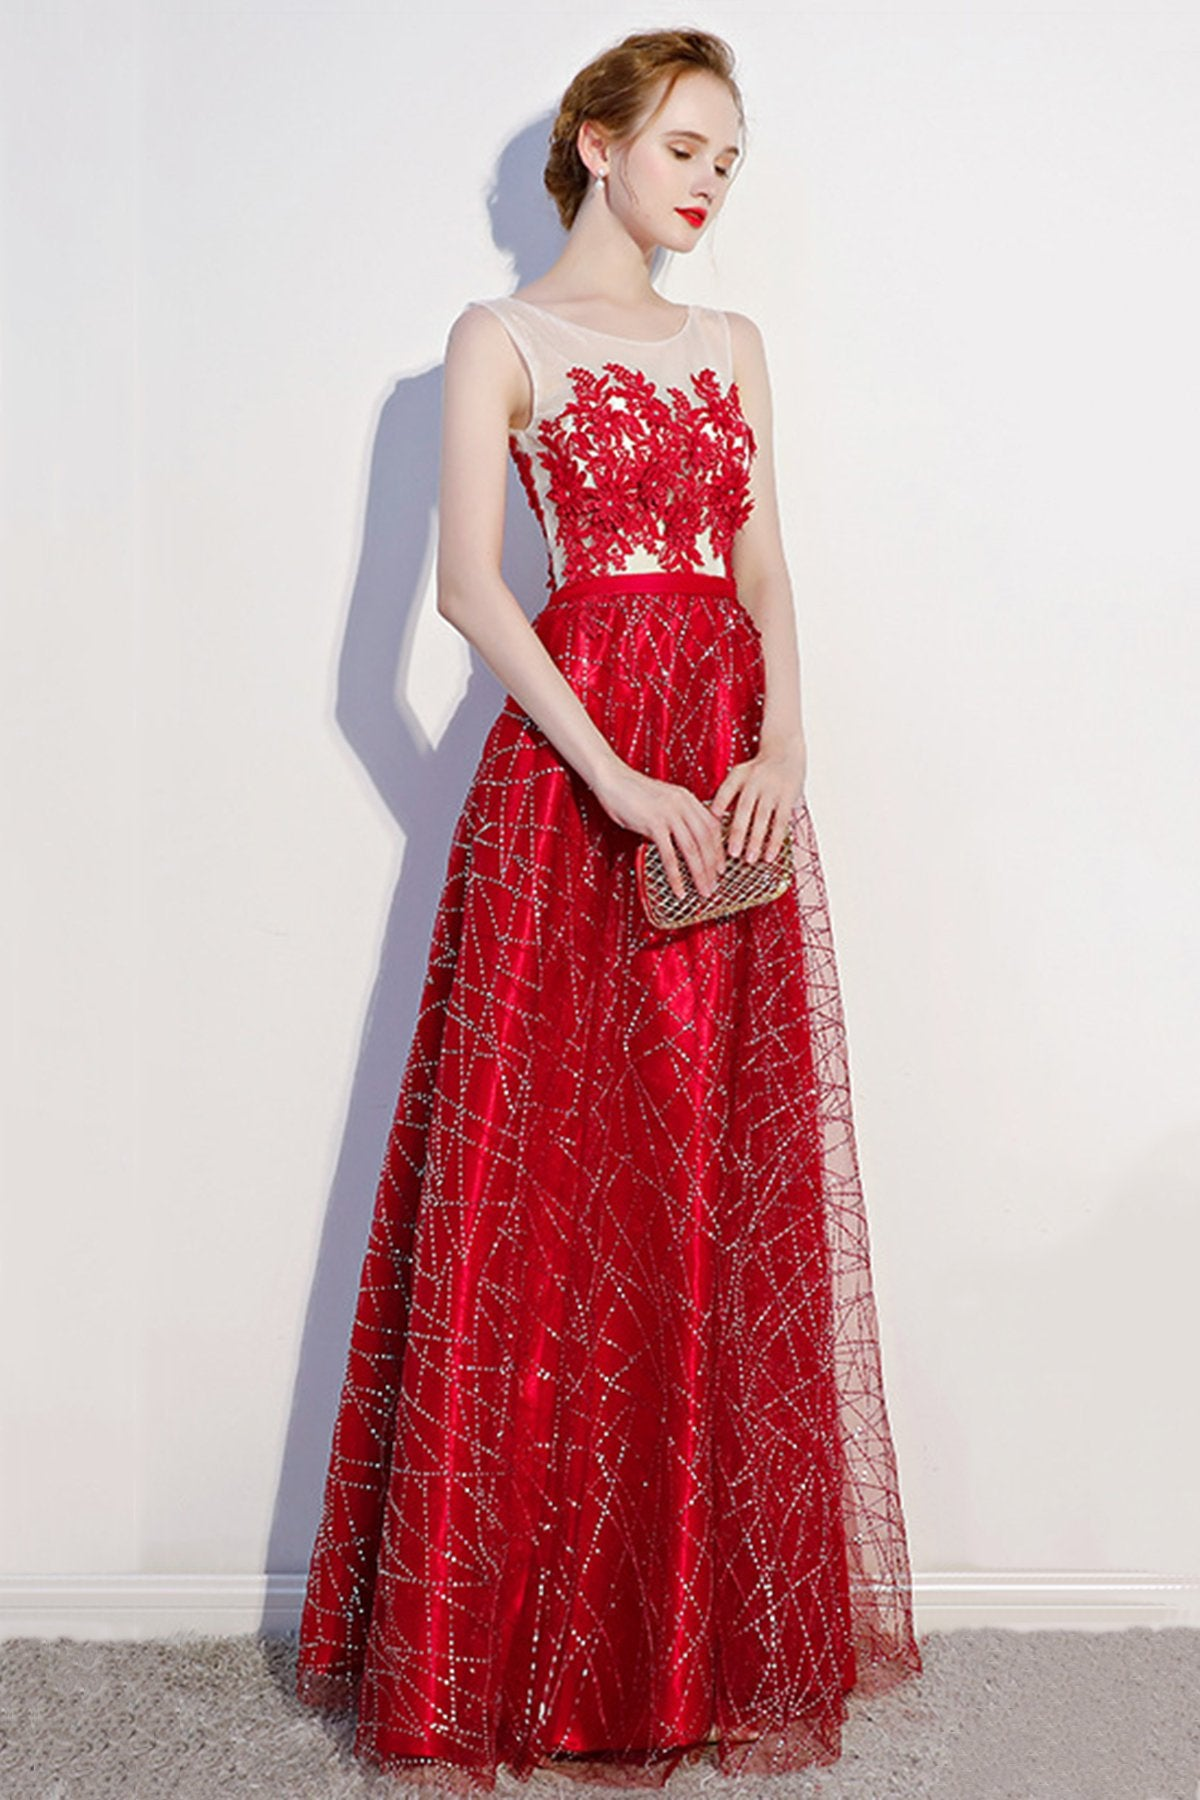 See-Through Lace Applique Sleeveless Evening Dress Evening Dresses US2 Red